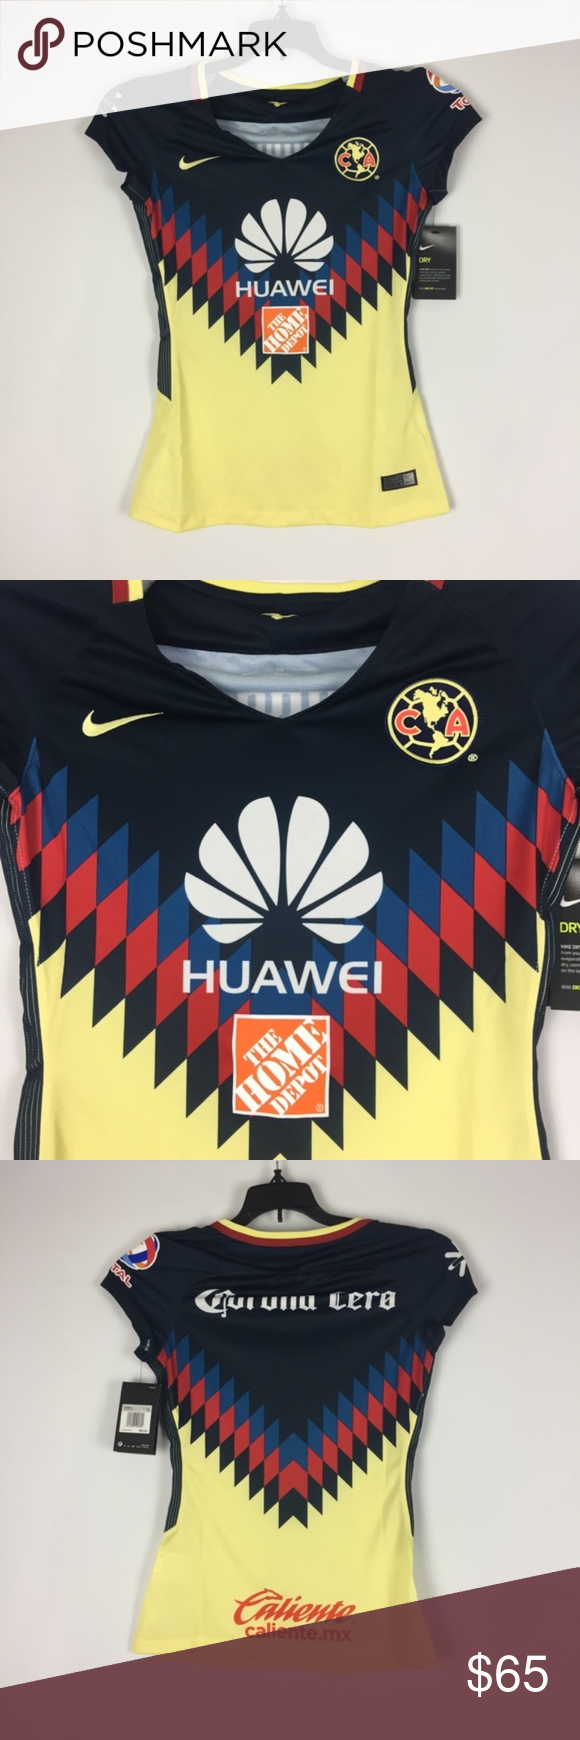 29d80fd1c82 Nike Women s Club America Home Soccer Jersey XS Please do research on  comparable prices on other